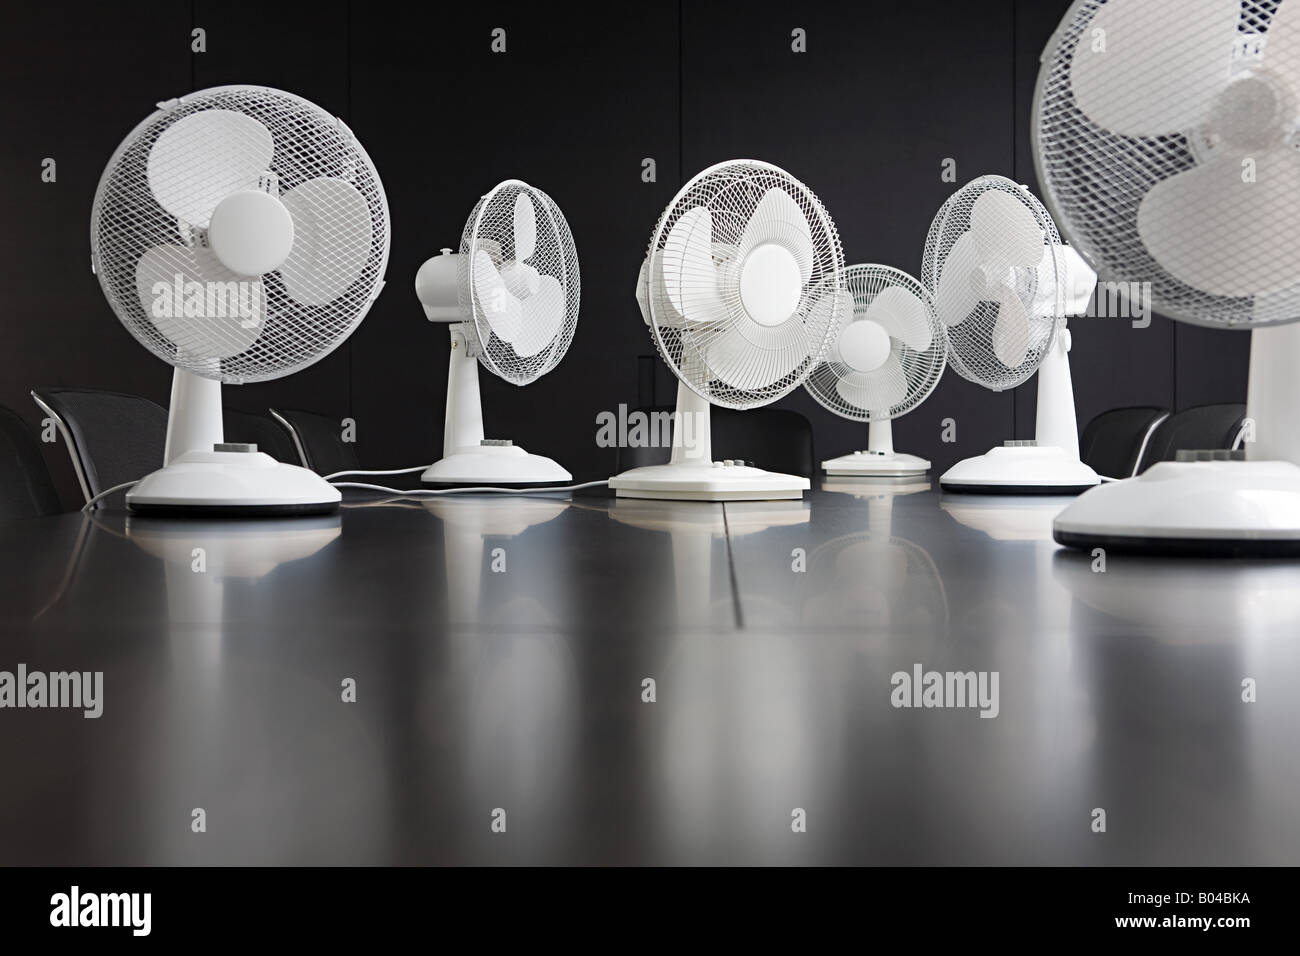 Electric fans on a conference table - Stock Image